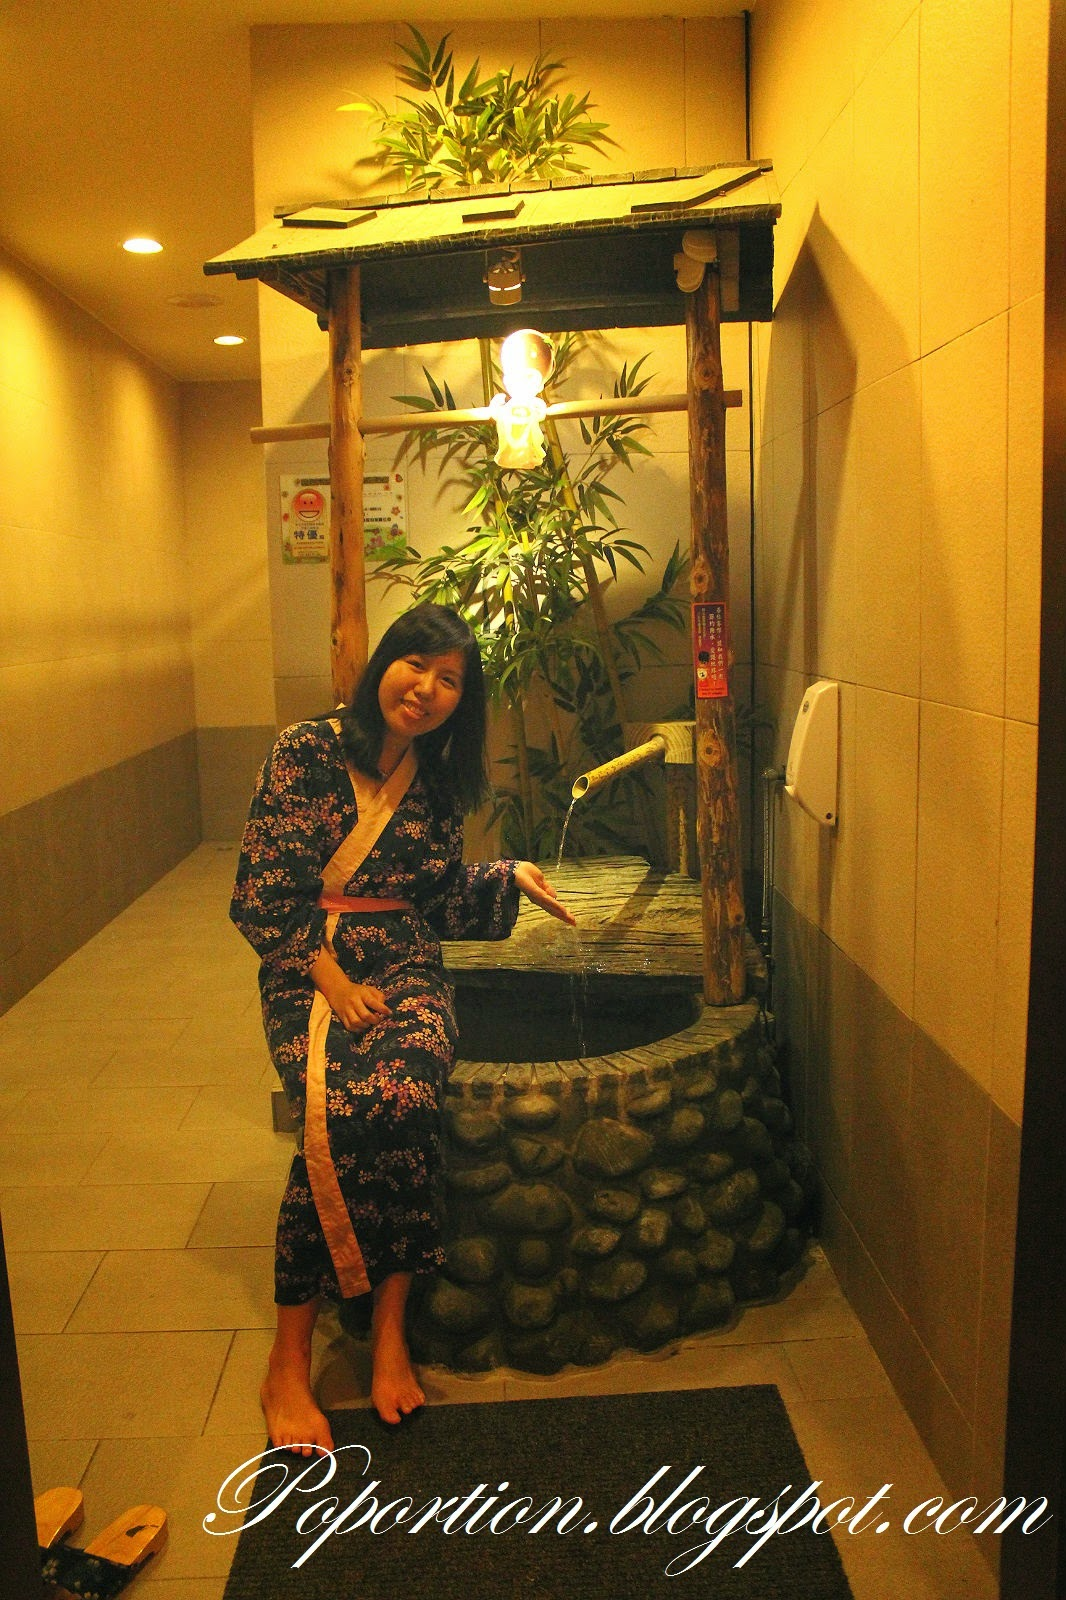 yukata by the well